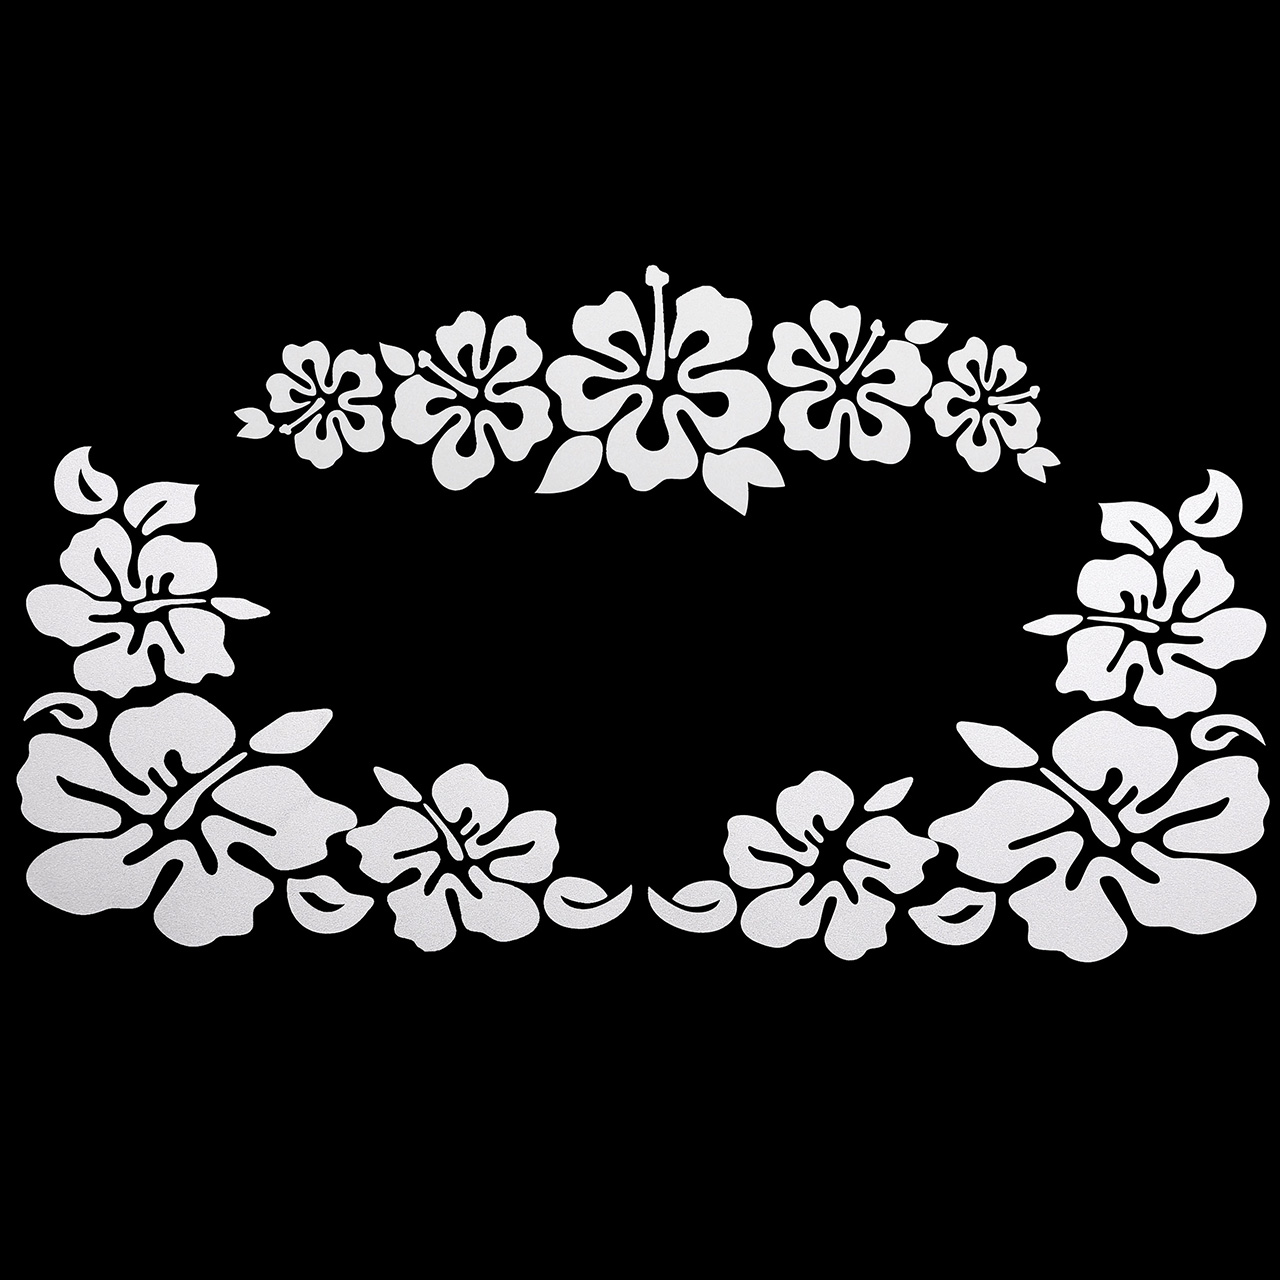 ACBungji Car Window Body Bumper Decal Sticker Scratch Cover Hibiscus Hawaiian Flower (White)